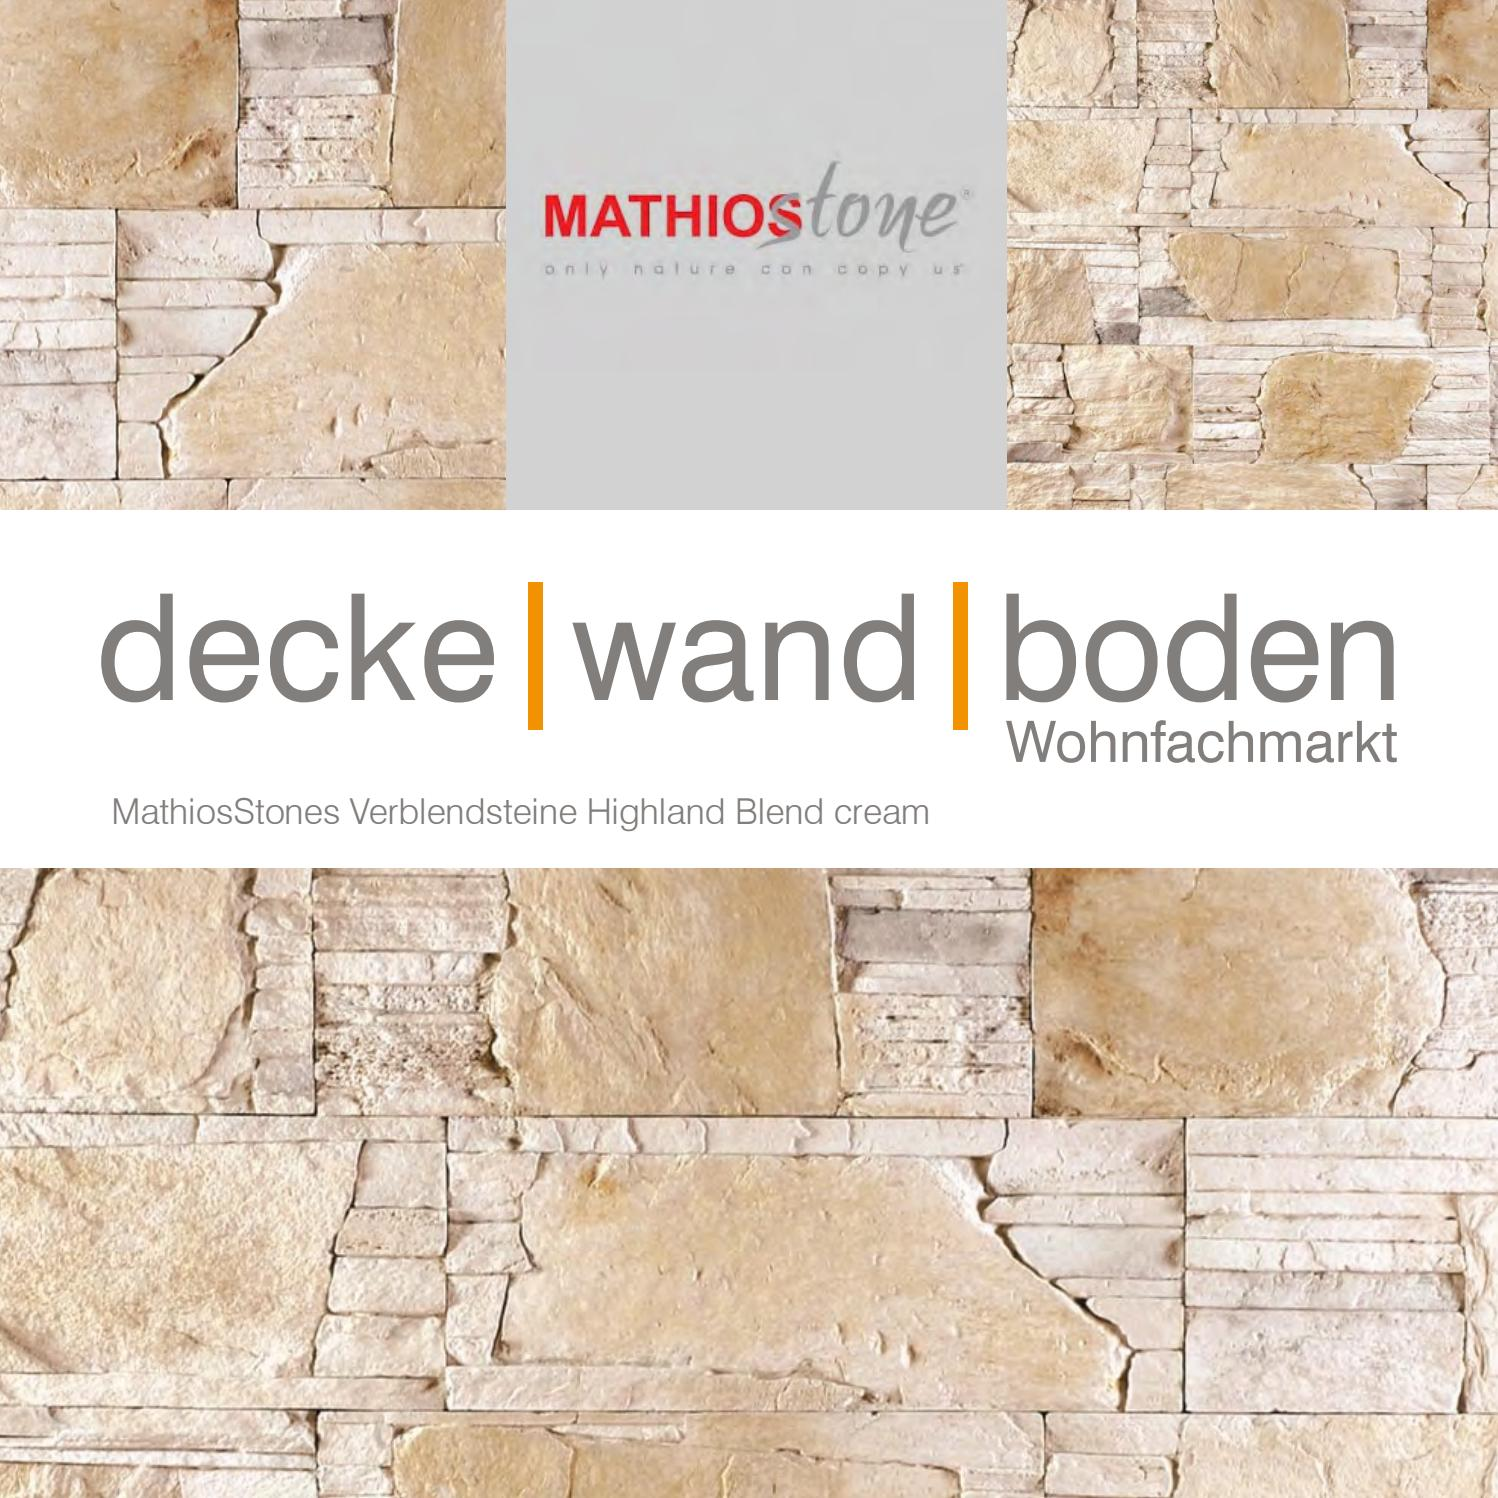 Wandverkleidung Steinoptik Ecke Mathios Stone Highland Blend Cream By Decke Wand Boden Ltd